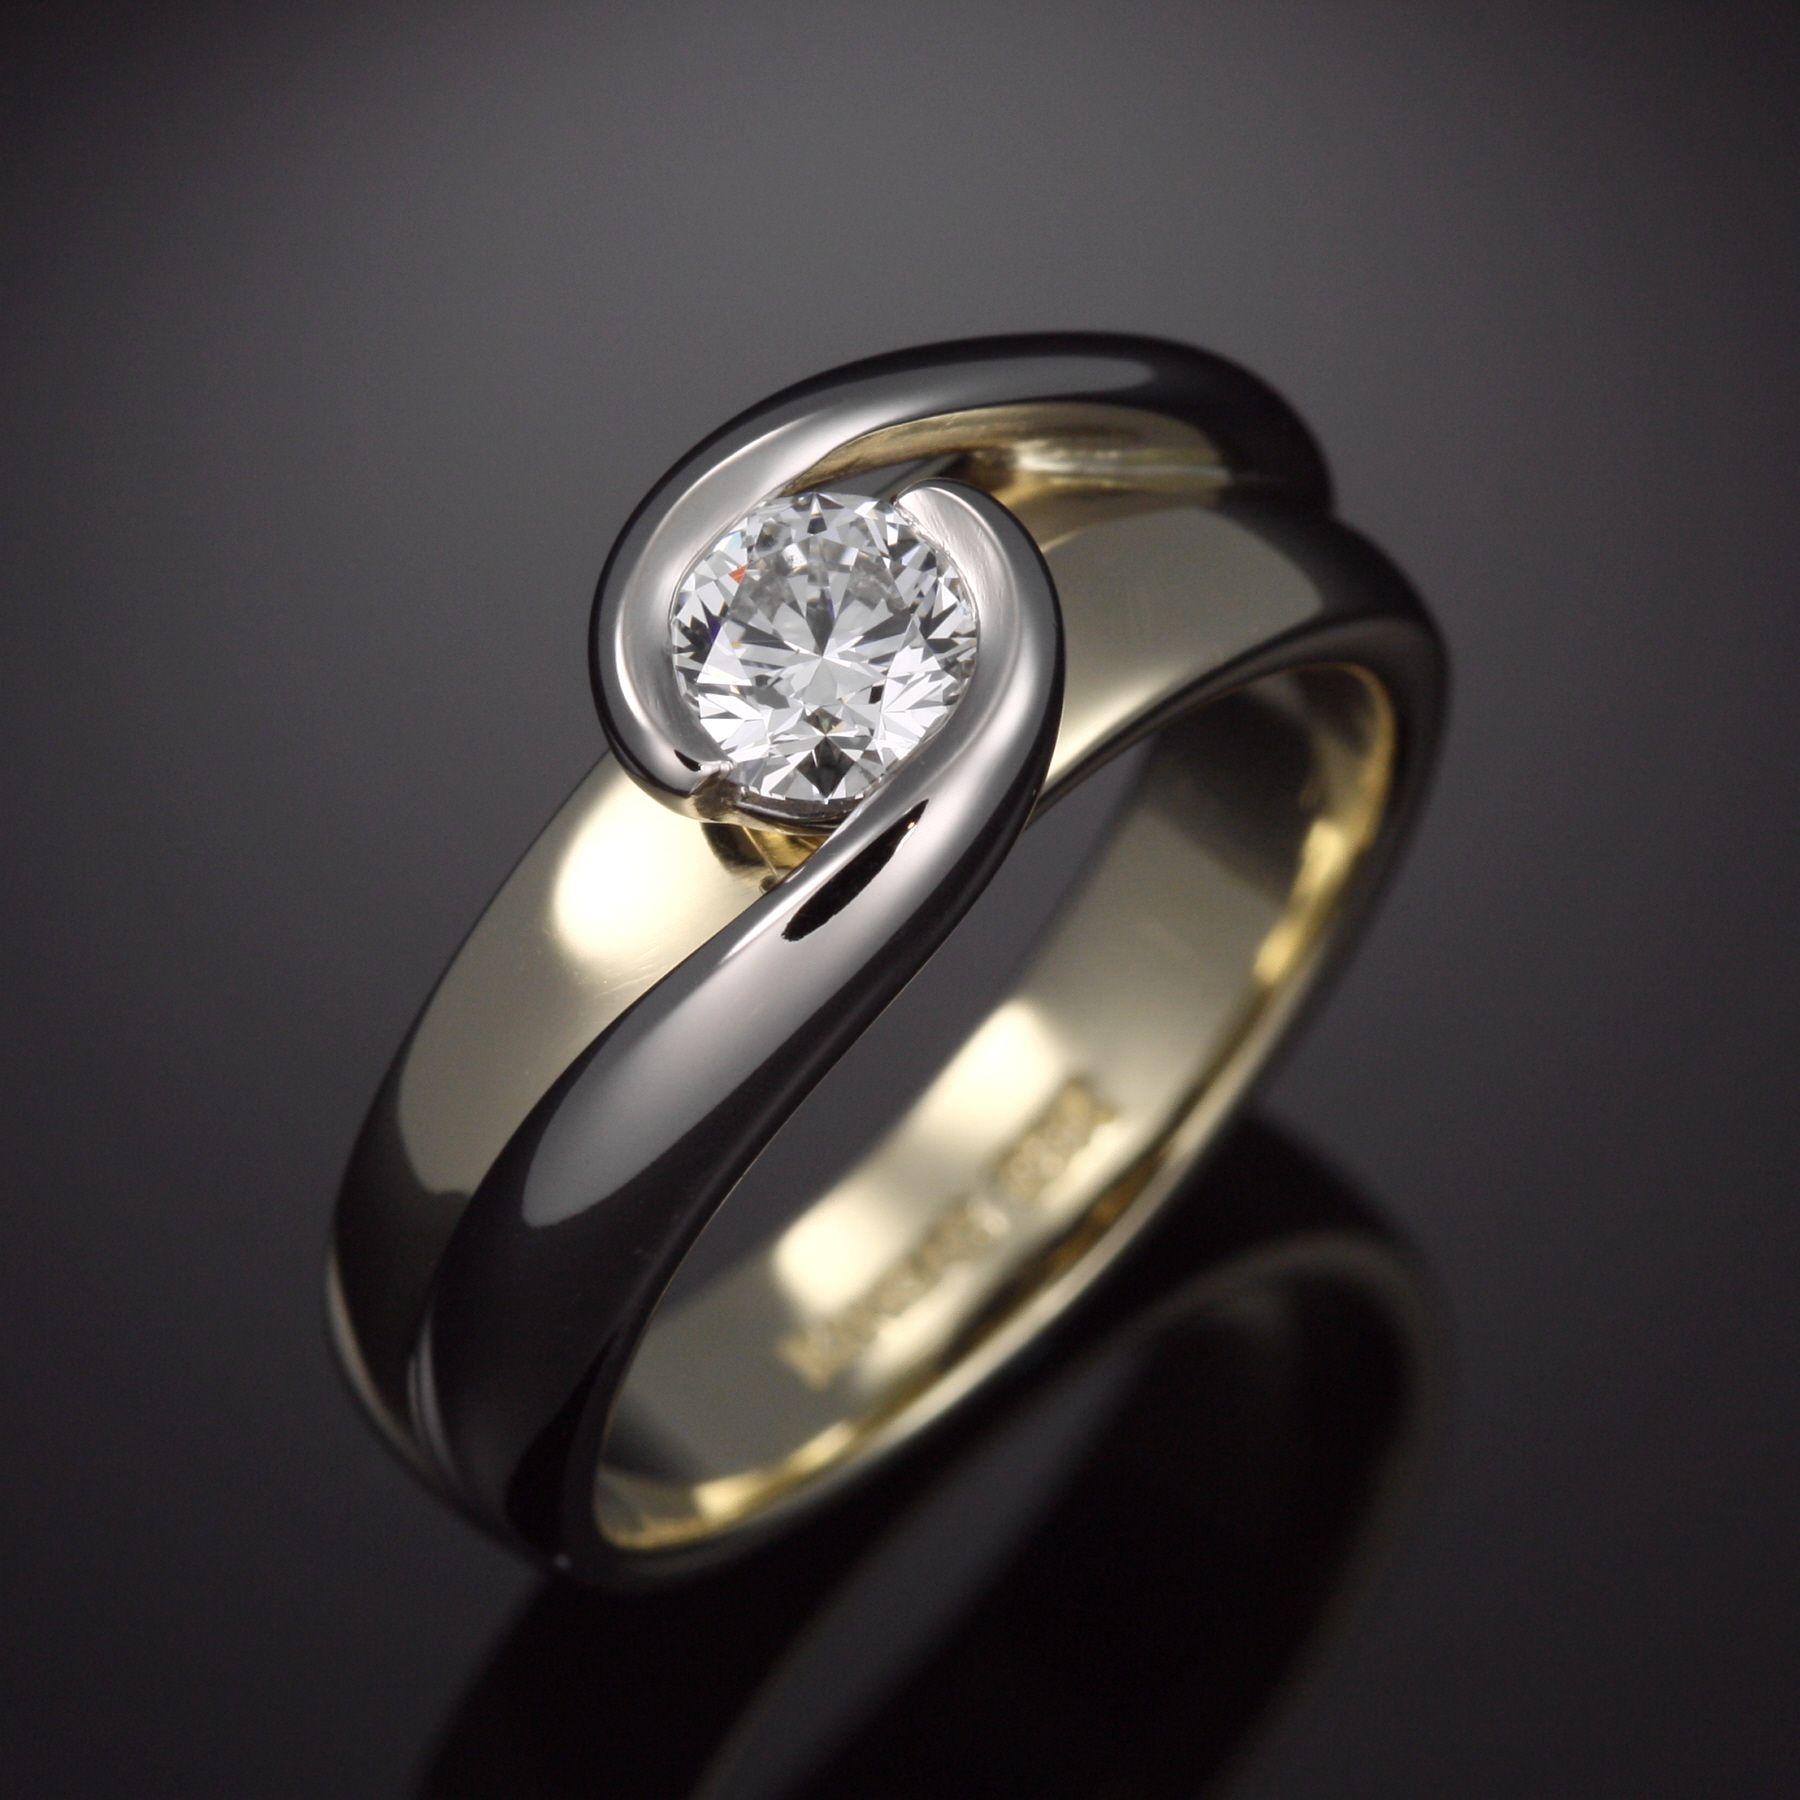 Sophisticated twotone diamond engagement ring, with flow